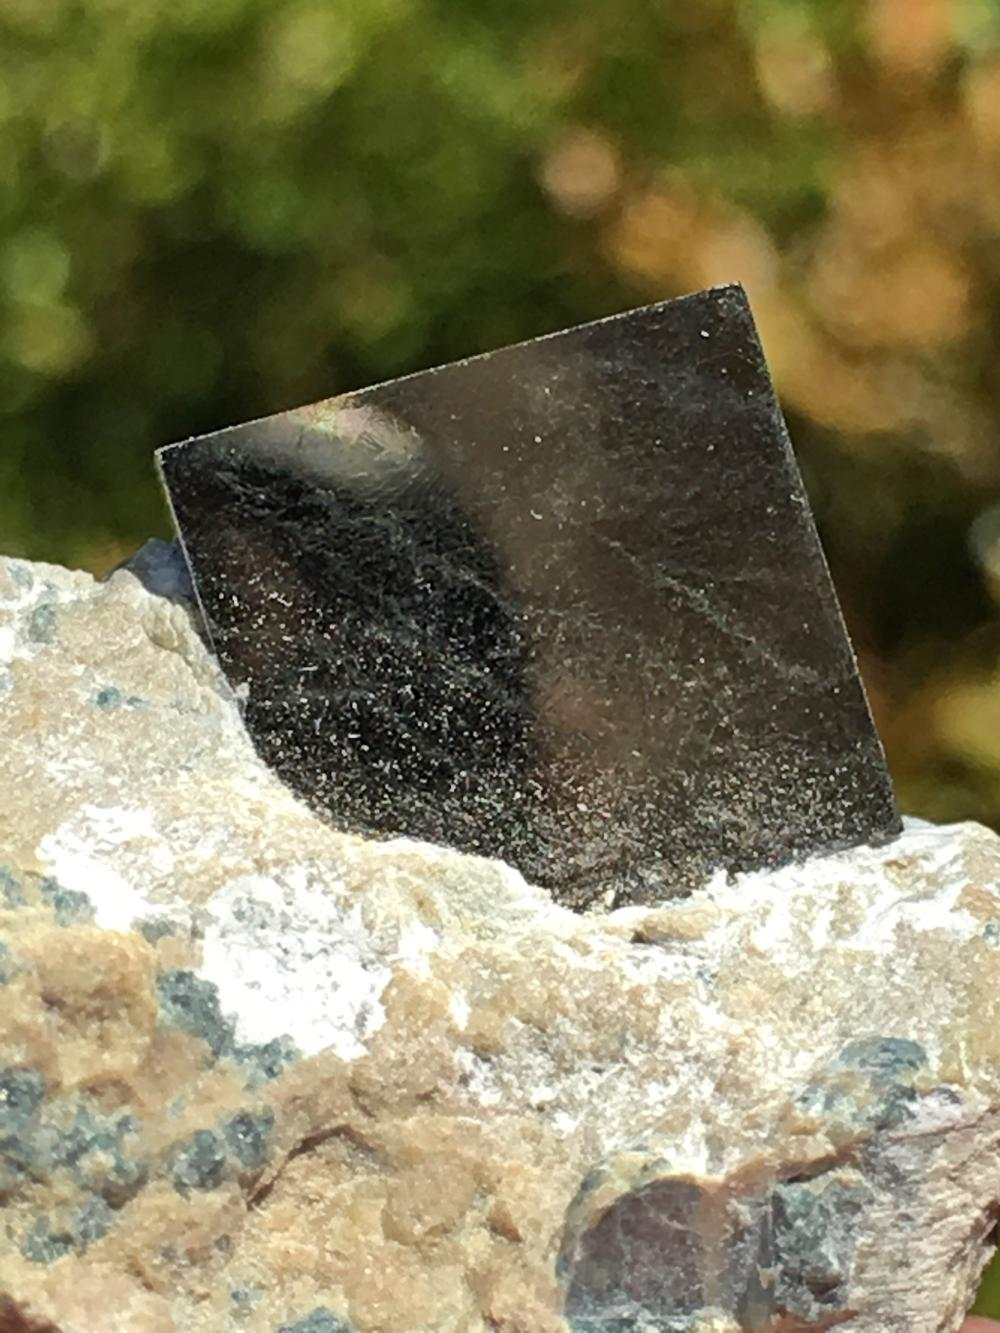 Lot 175: Pyrite, Rock, Crystal, Natural, Collectible, Mineral, Specimen